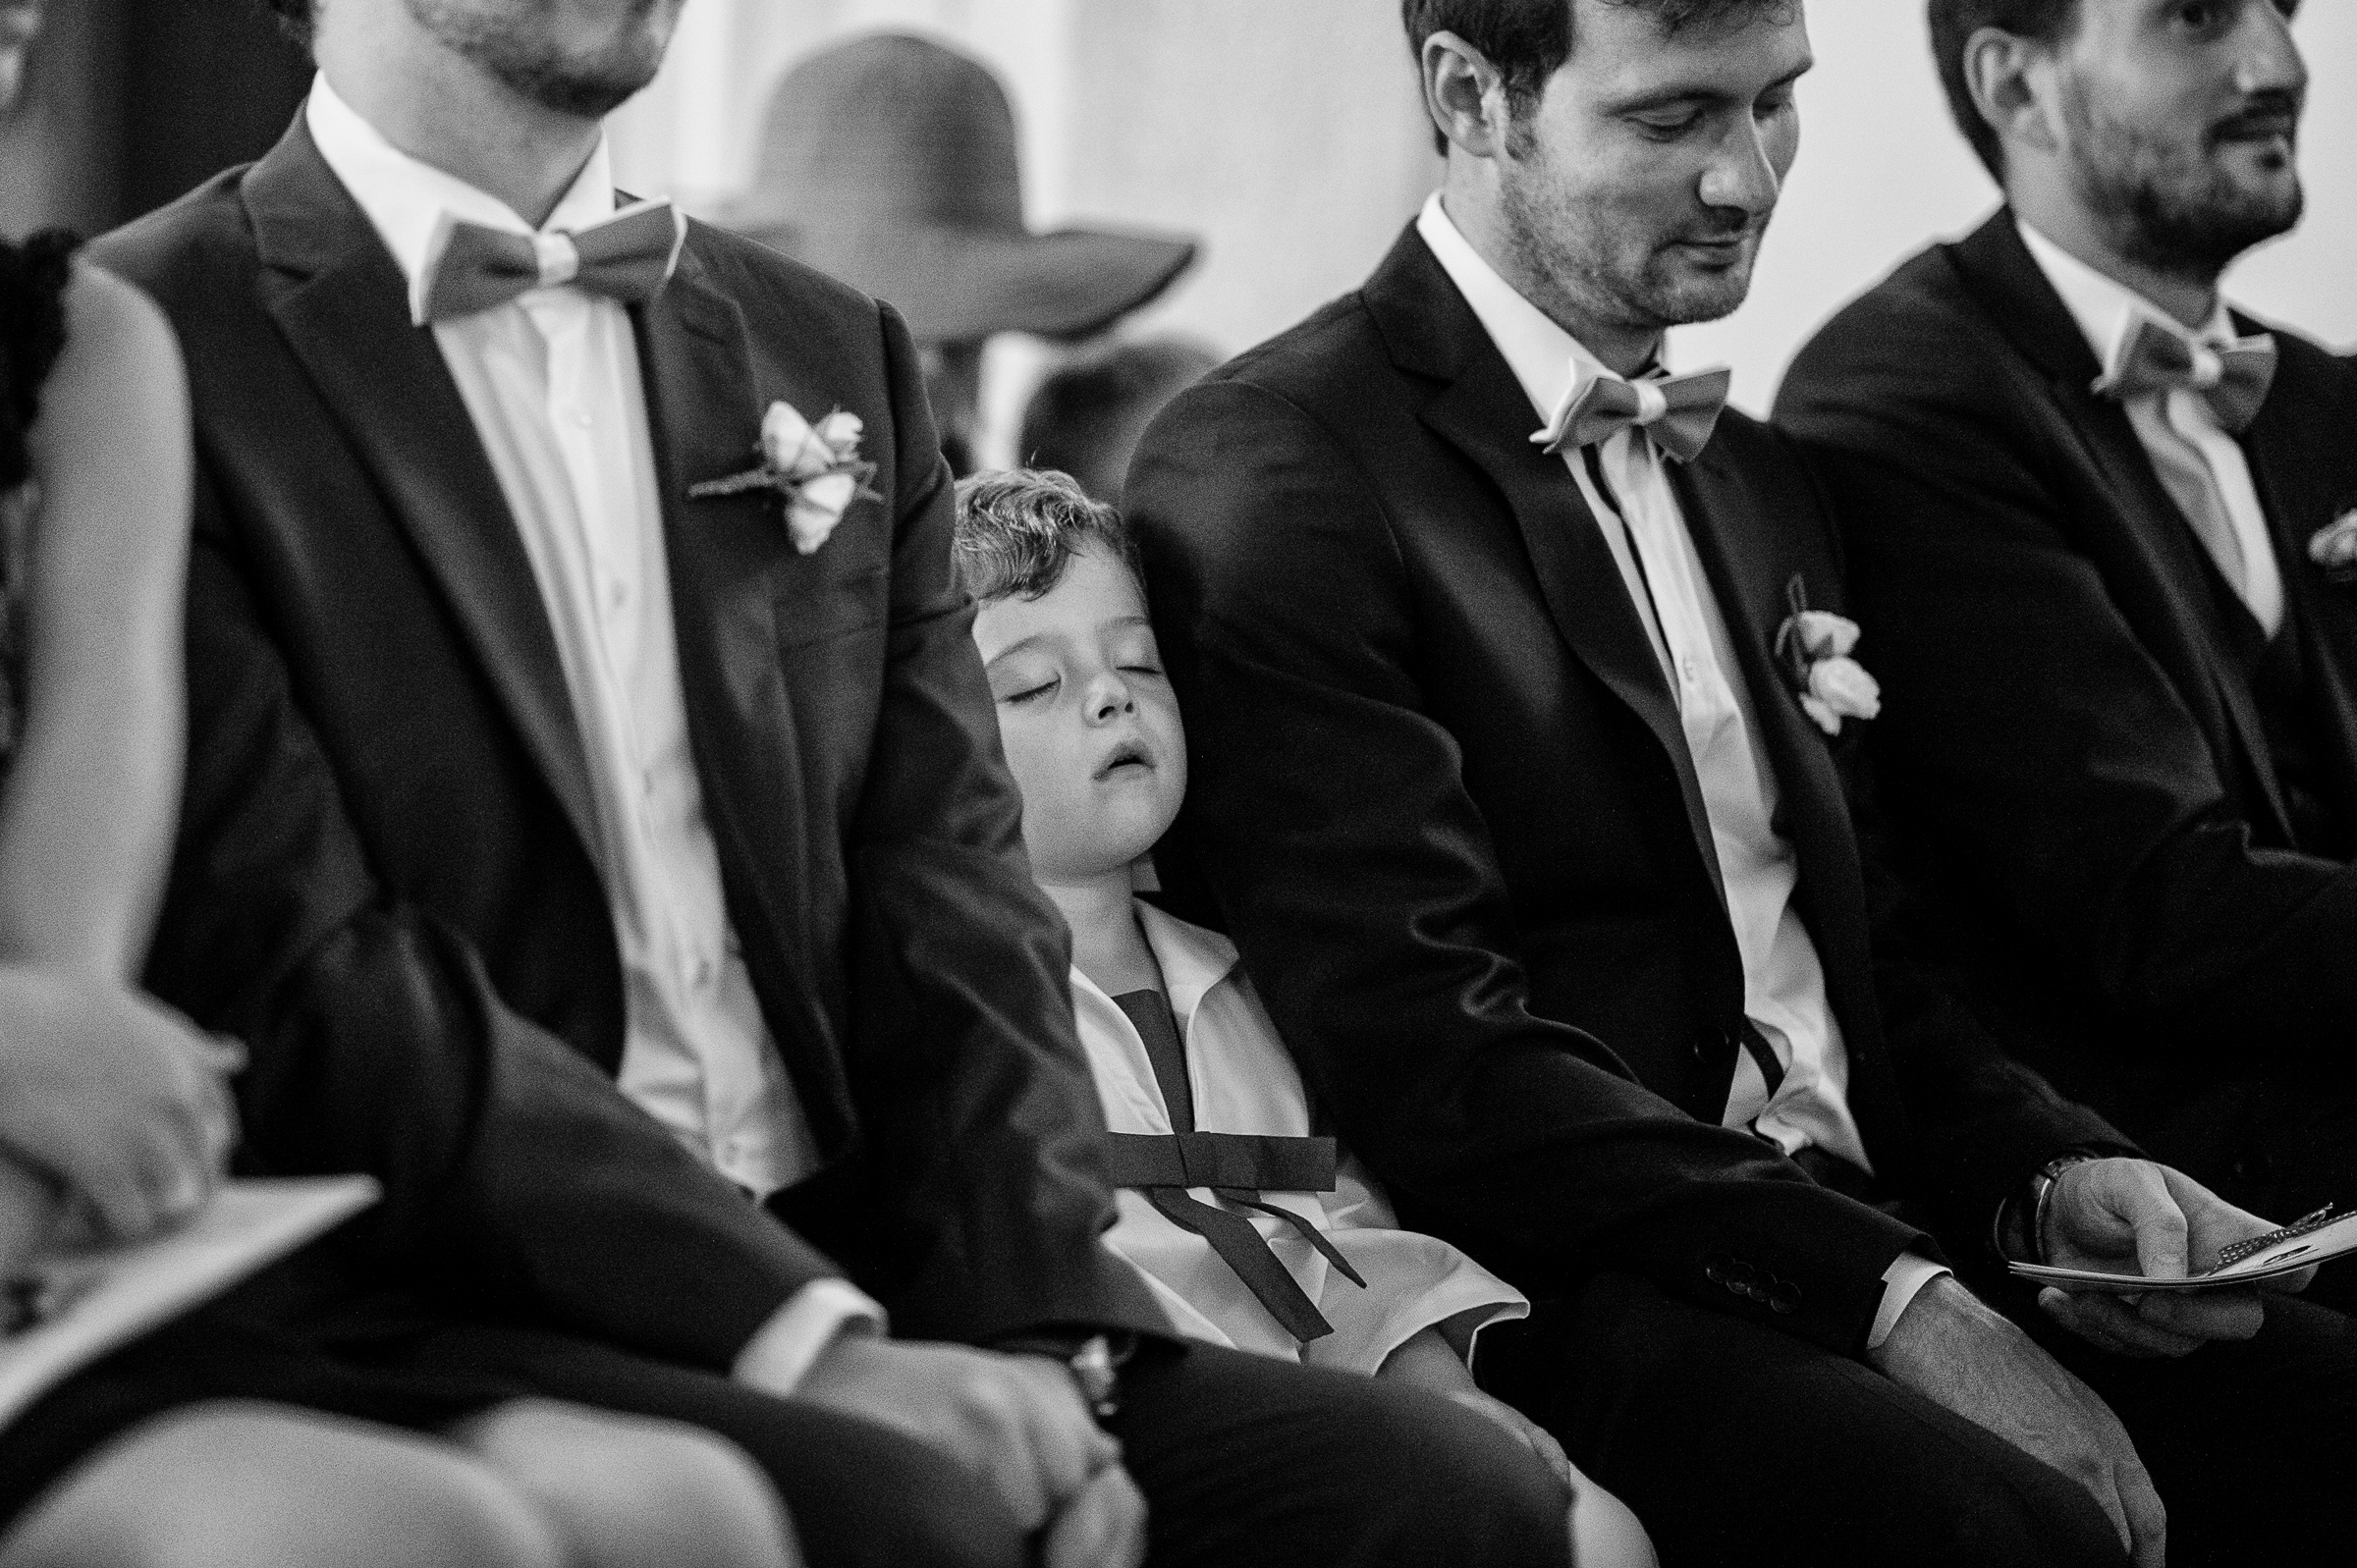 boy napping among seated groomsmen - photo by Gaelle Le Berre Photography